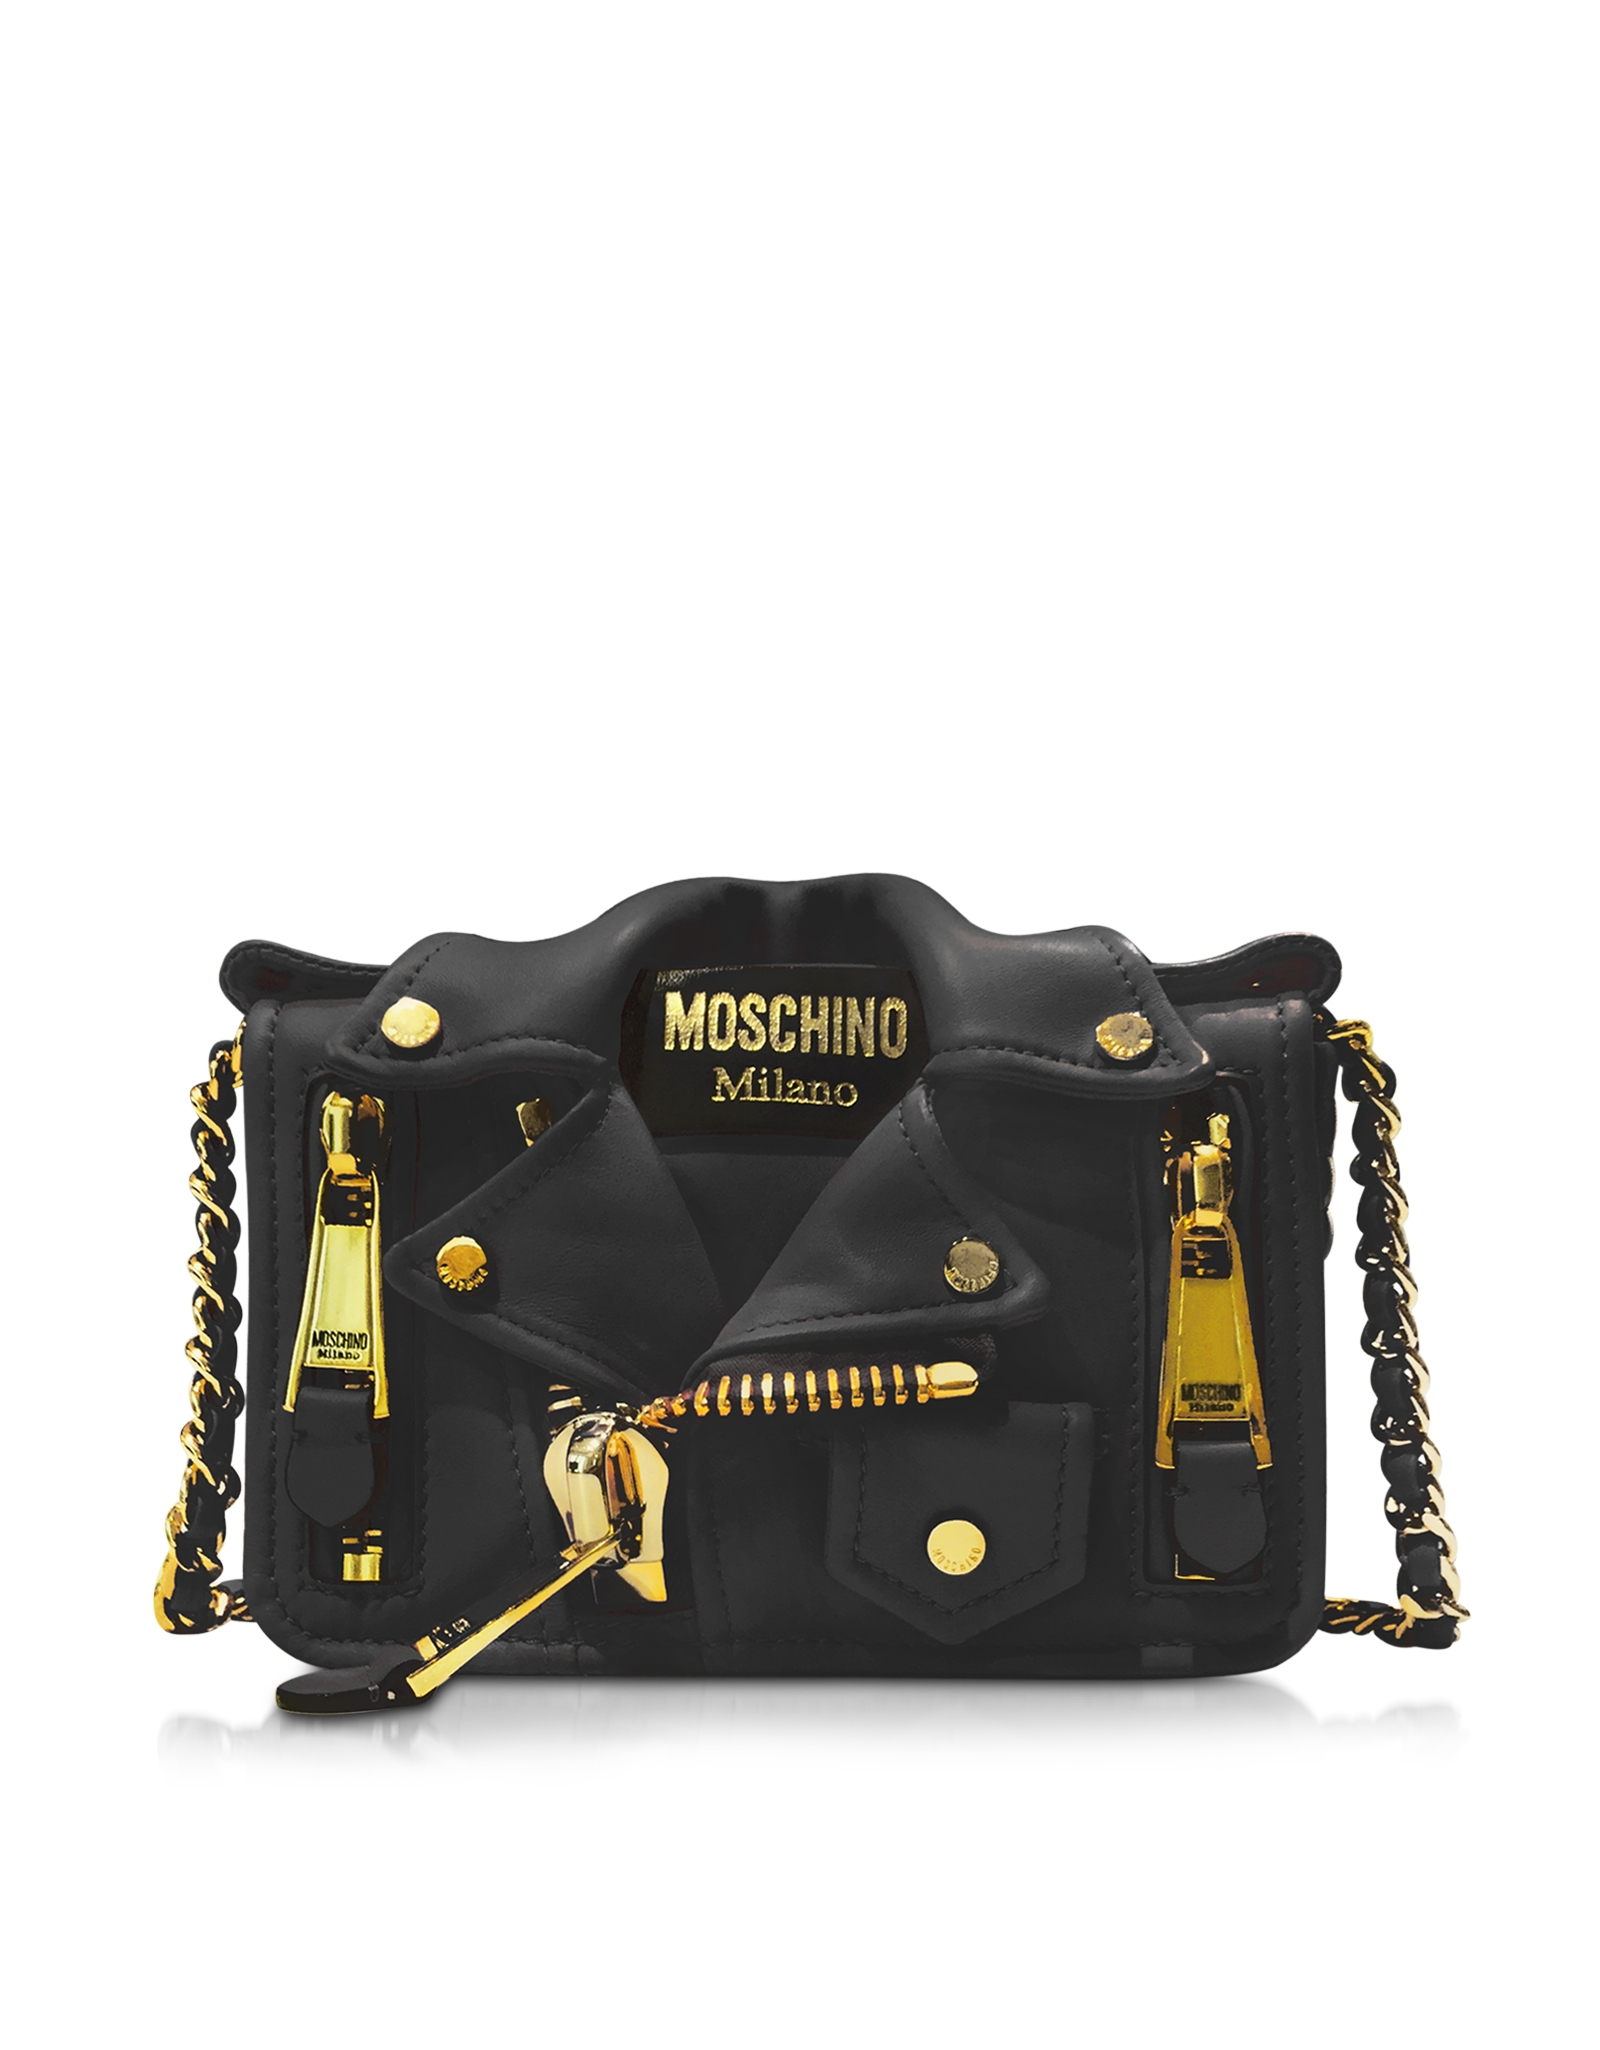 Moschino Biker Jacket crossbody - Black xEbPT4Inpi